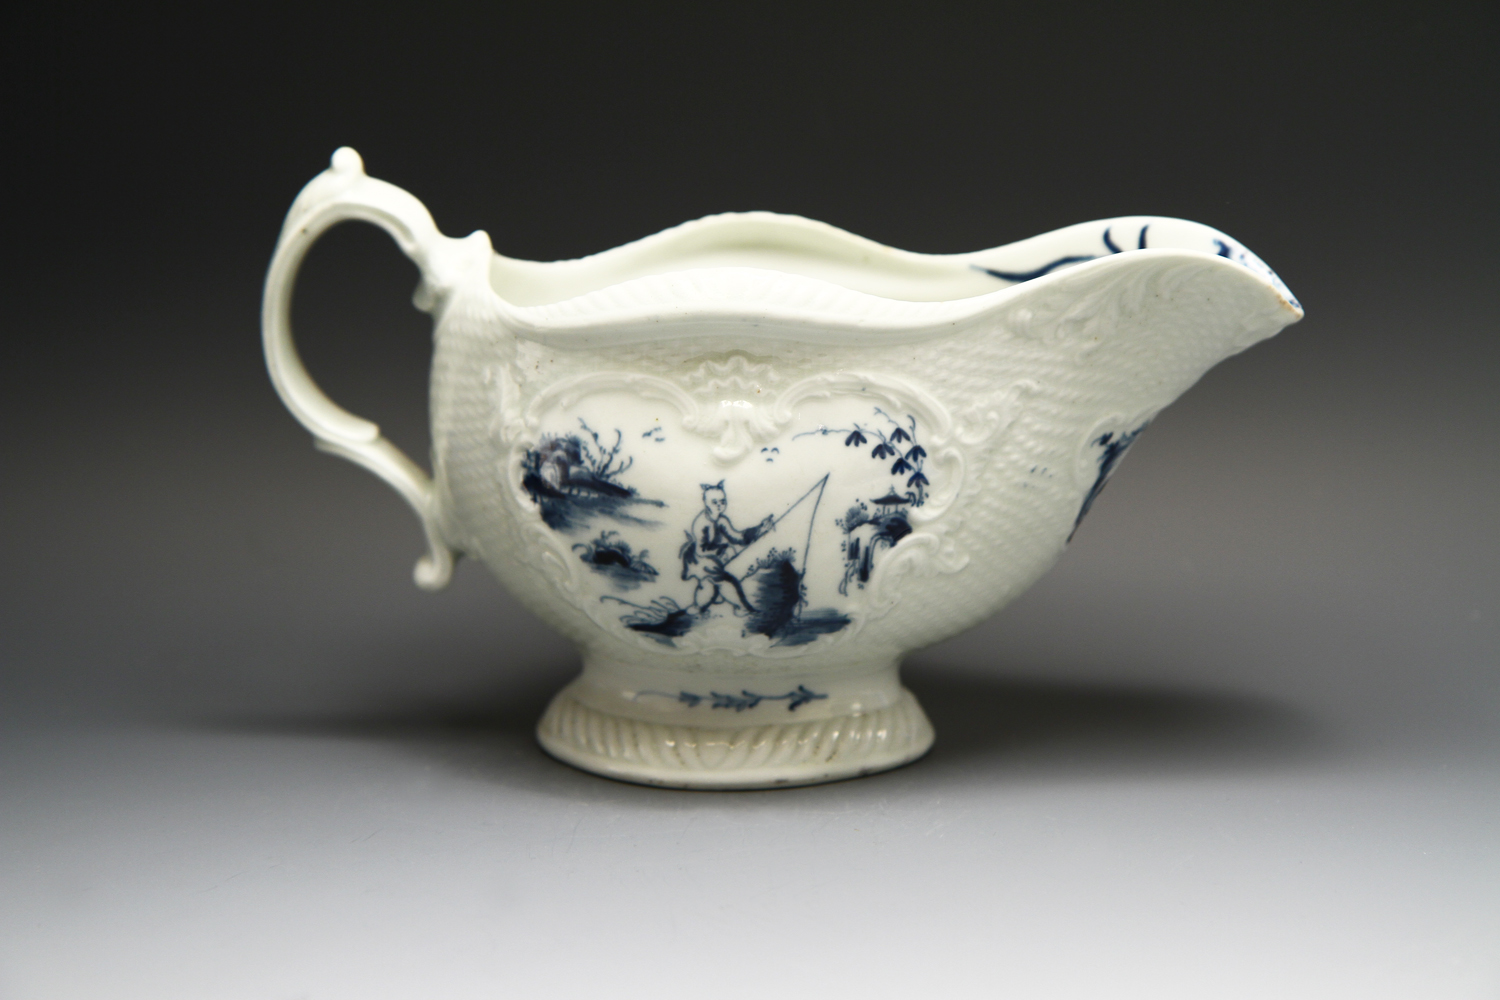 1091 - A good Worcester sauceboat in the Man with Bomb pattern, c 1765-8